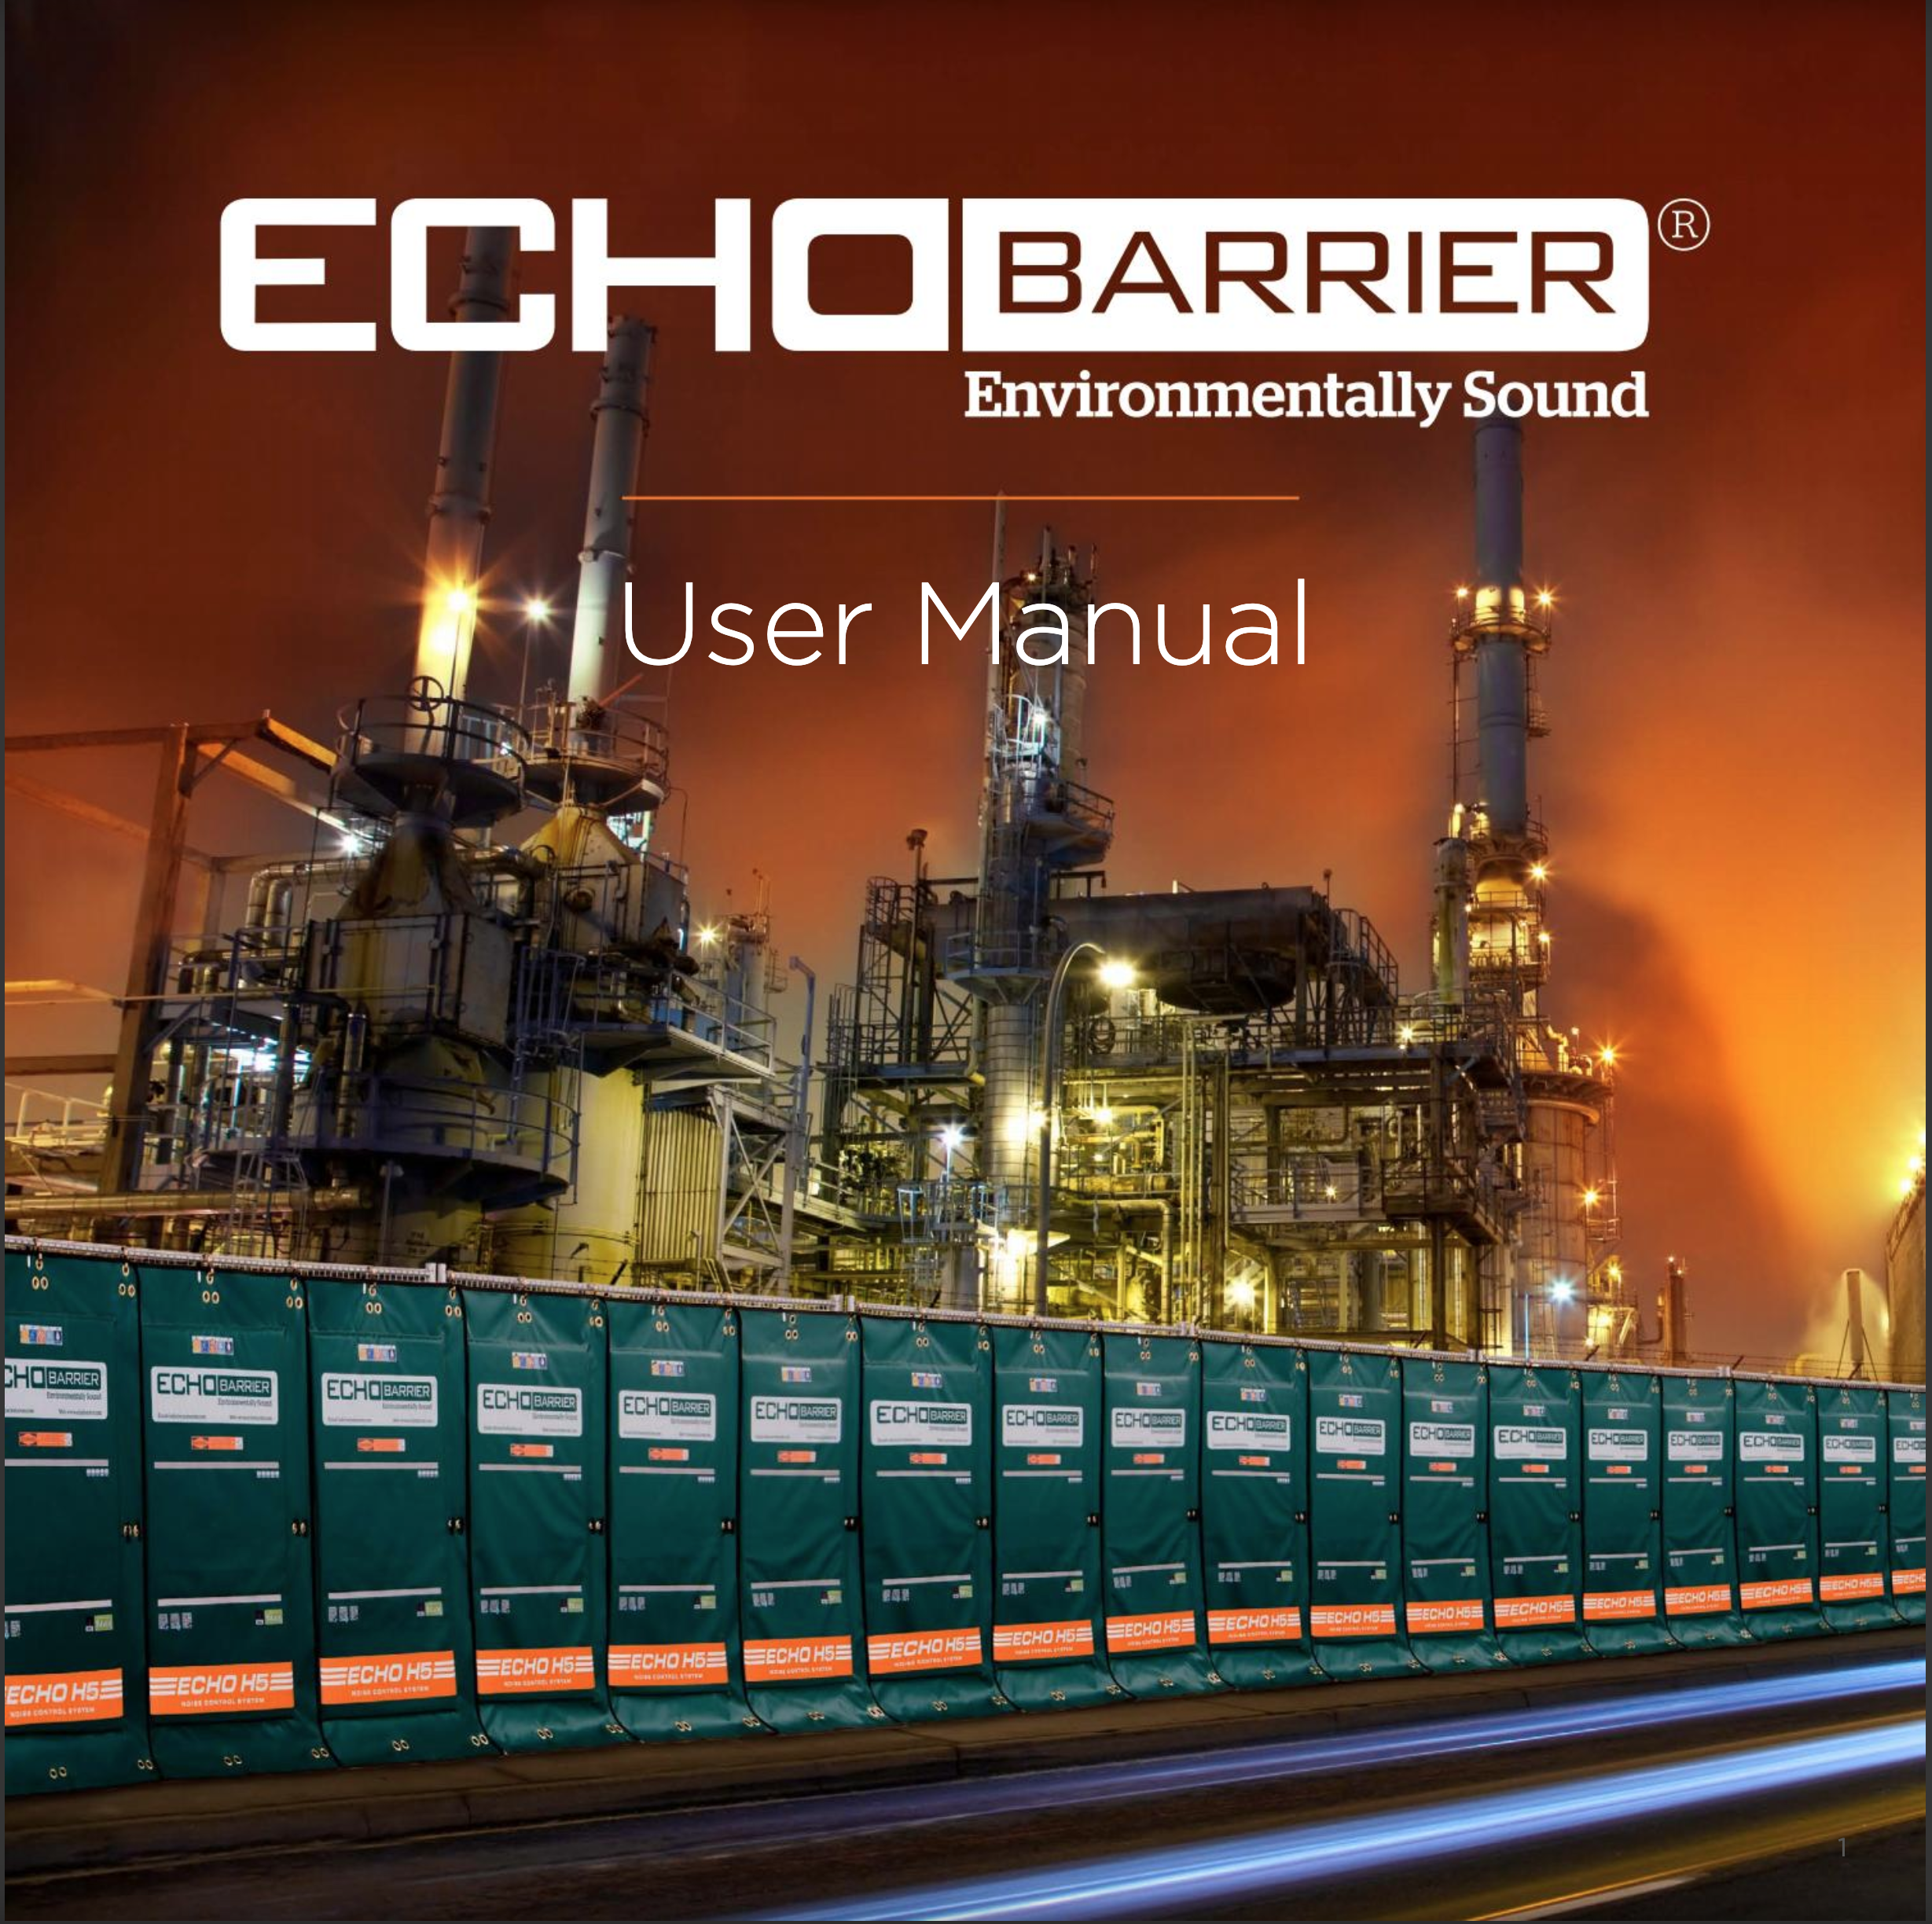 The_Echo_Barrier_user_manual